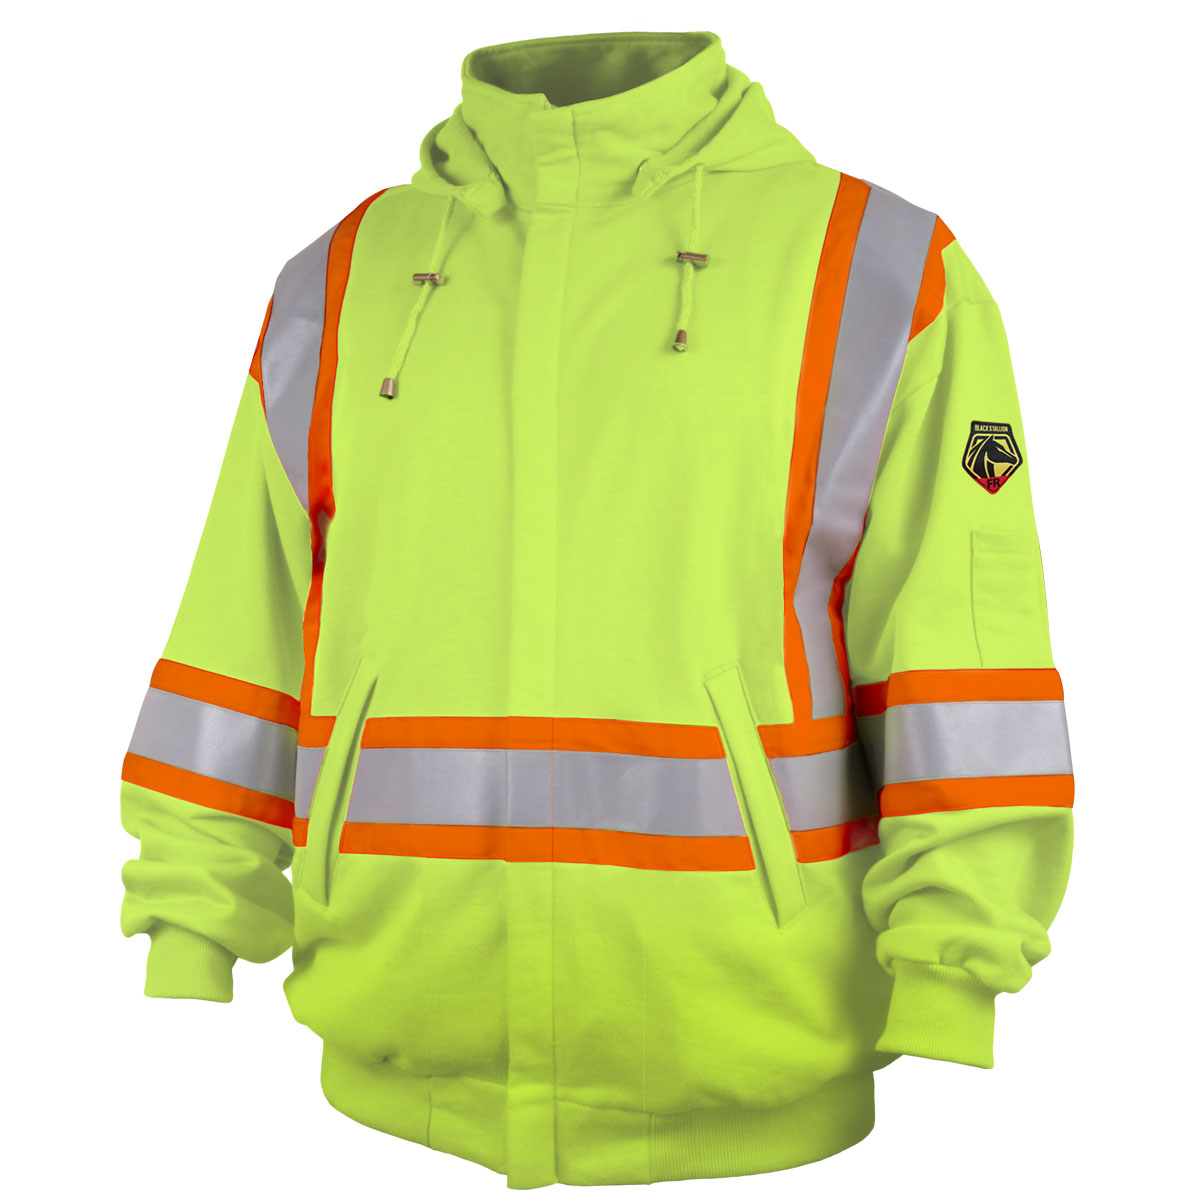 TruGuard 200 FR Cotton Full Zip Hooded Sweatshirt, Safety Lime #JF1332-LM